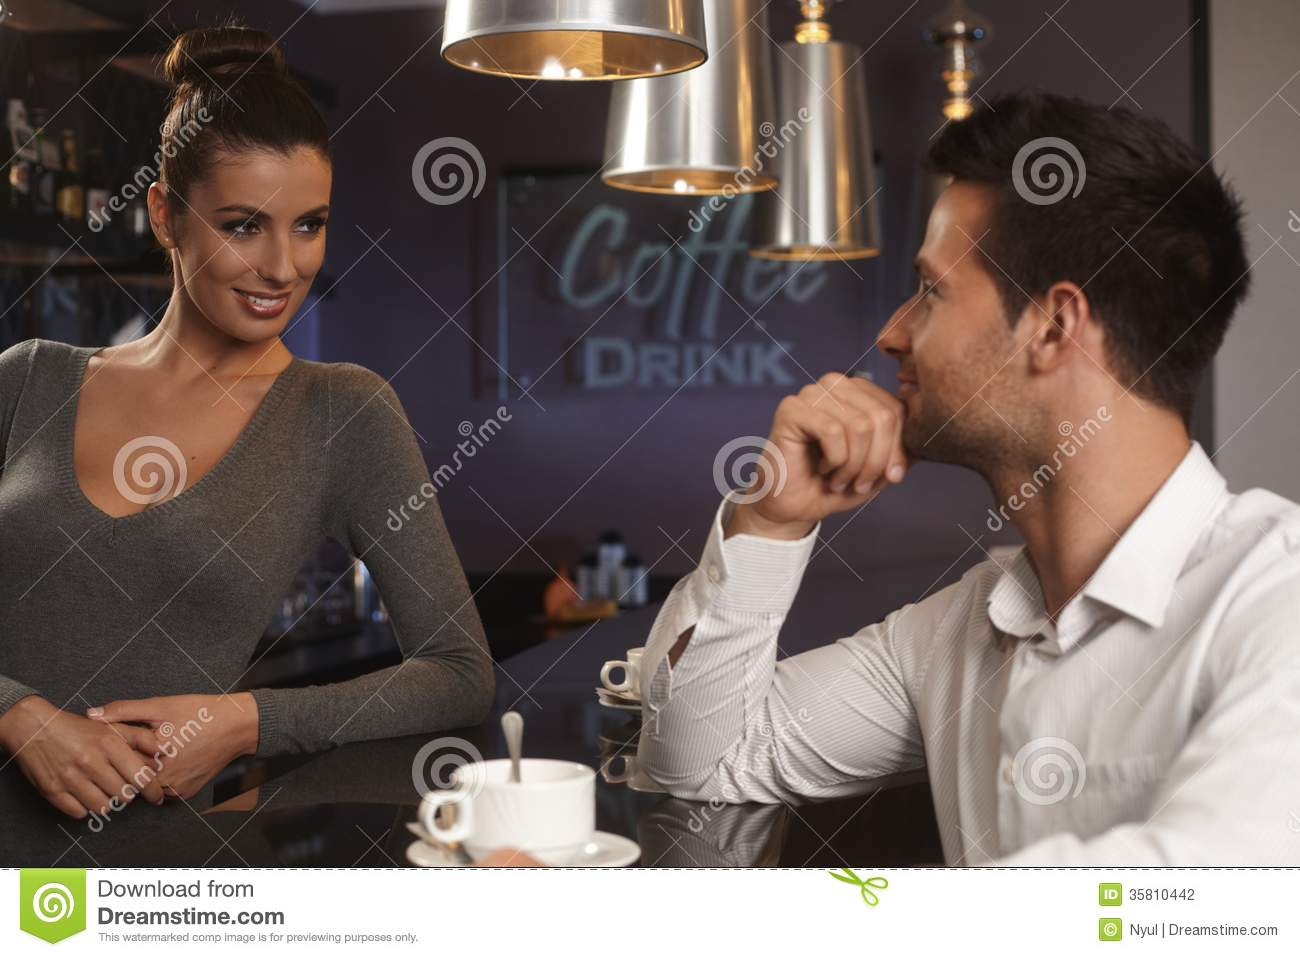 Female bartender standing in a bar and smiling hot girls wallpaper